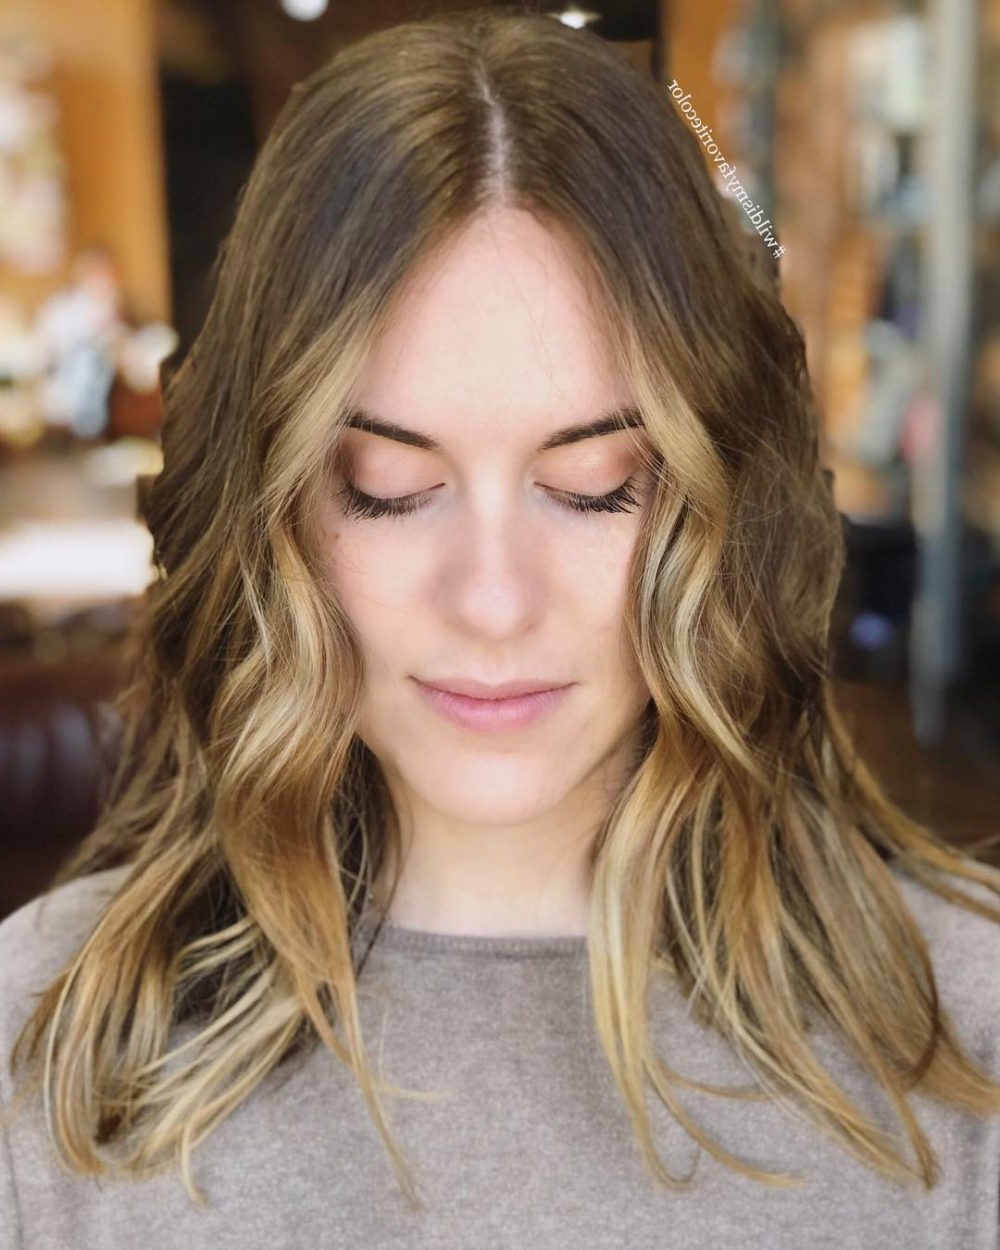 2018 Medium Medium Hairstyles For Round Faces Inside 17 Flattering Medium Hairstyles For Round Faces In 2019 (Gallery 1 of 20)